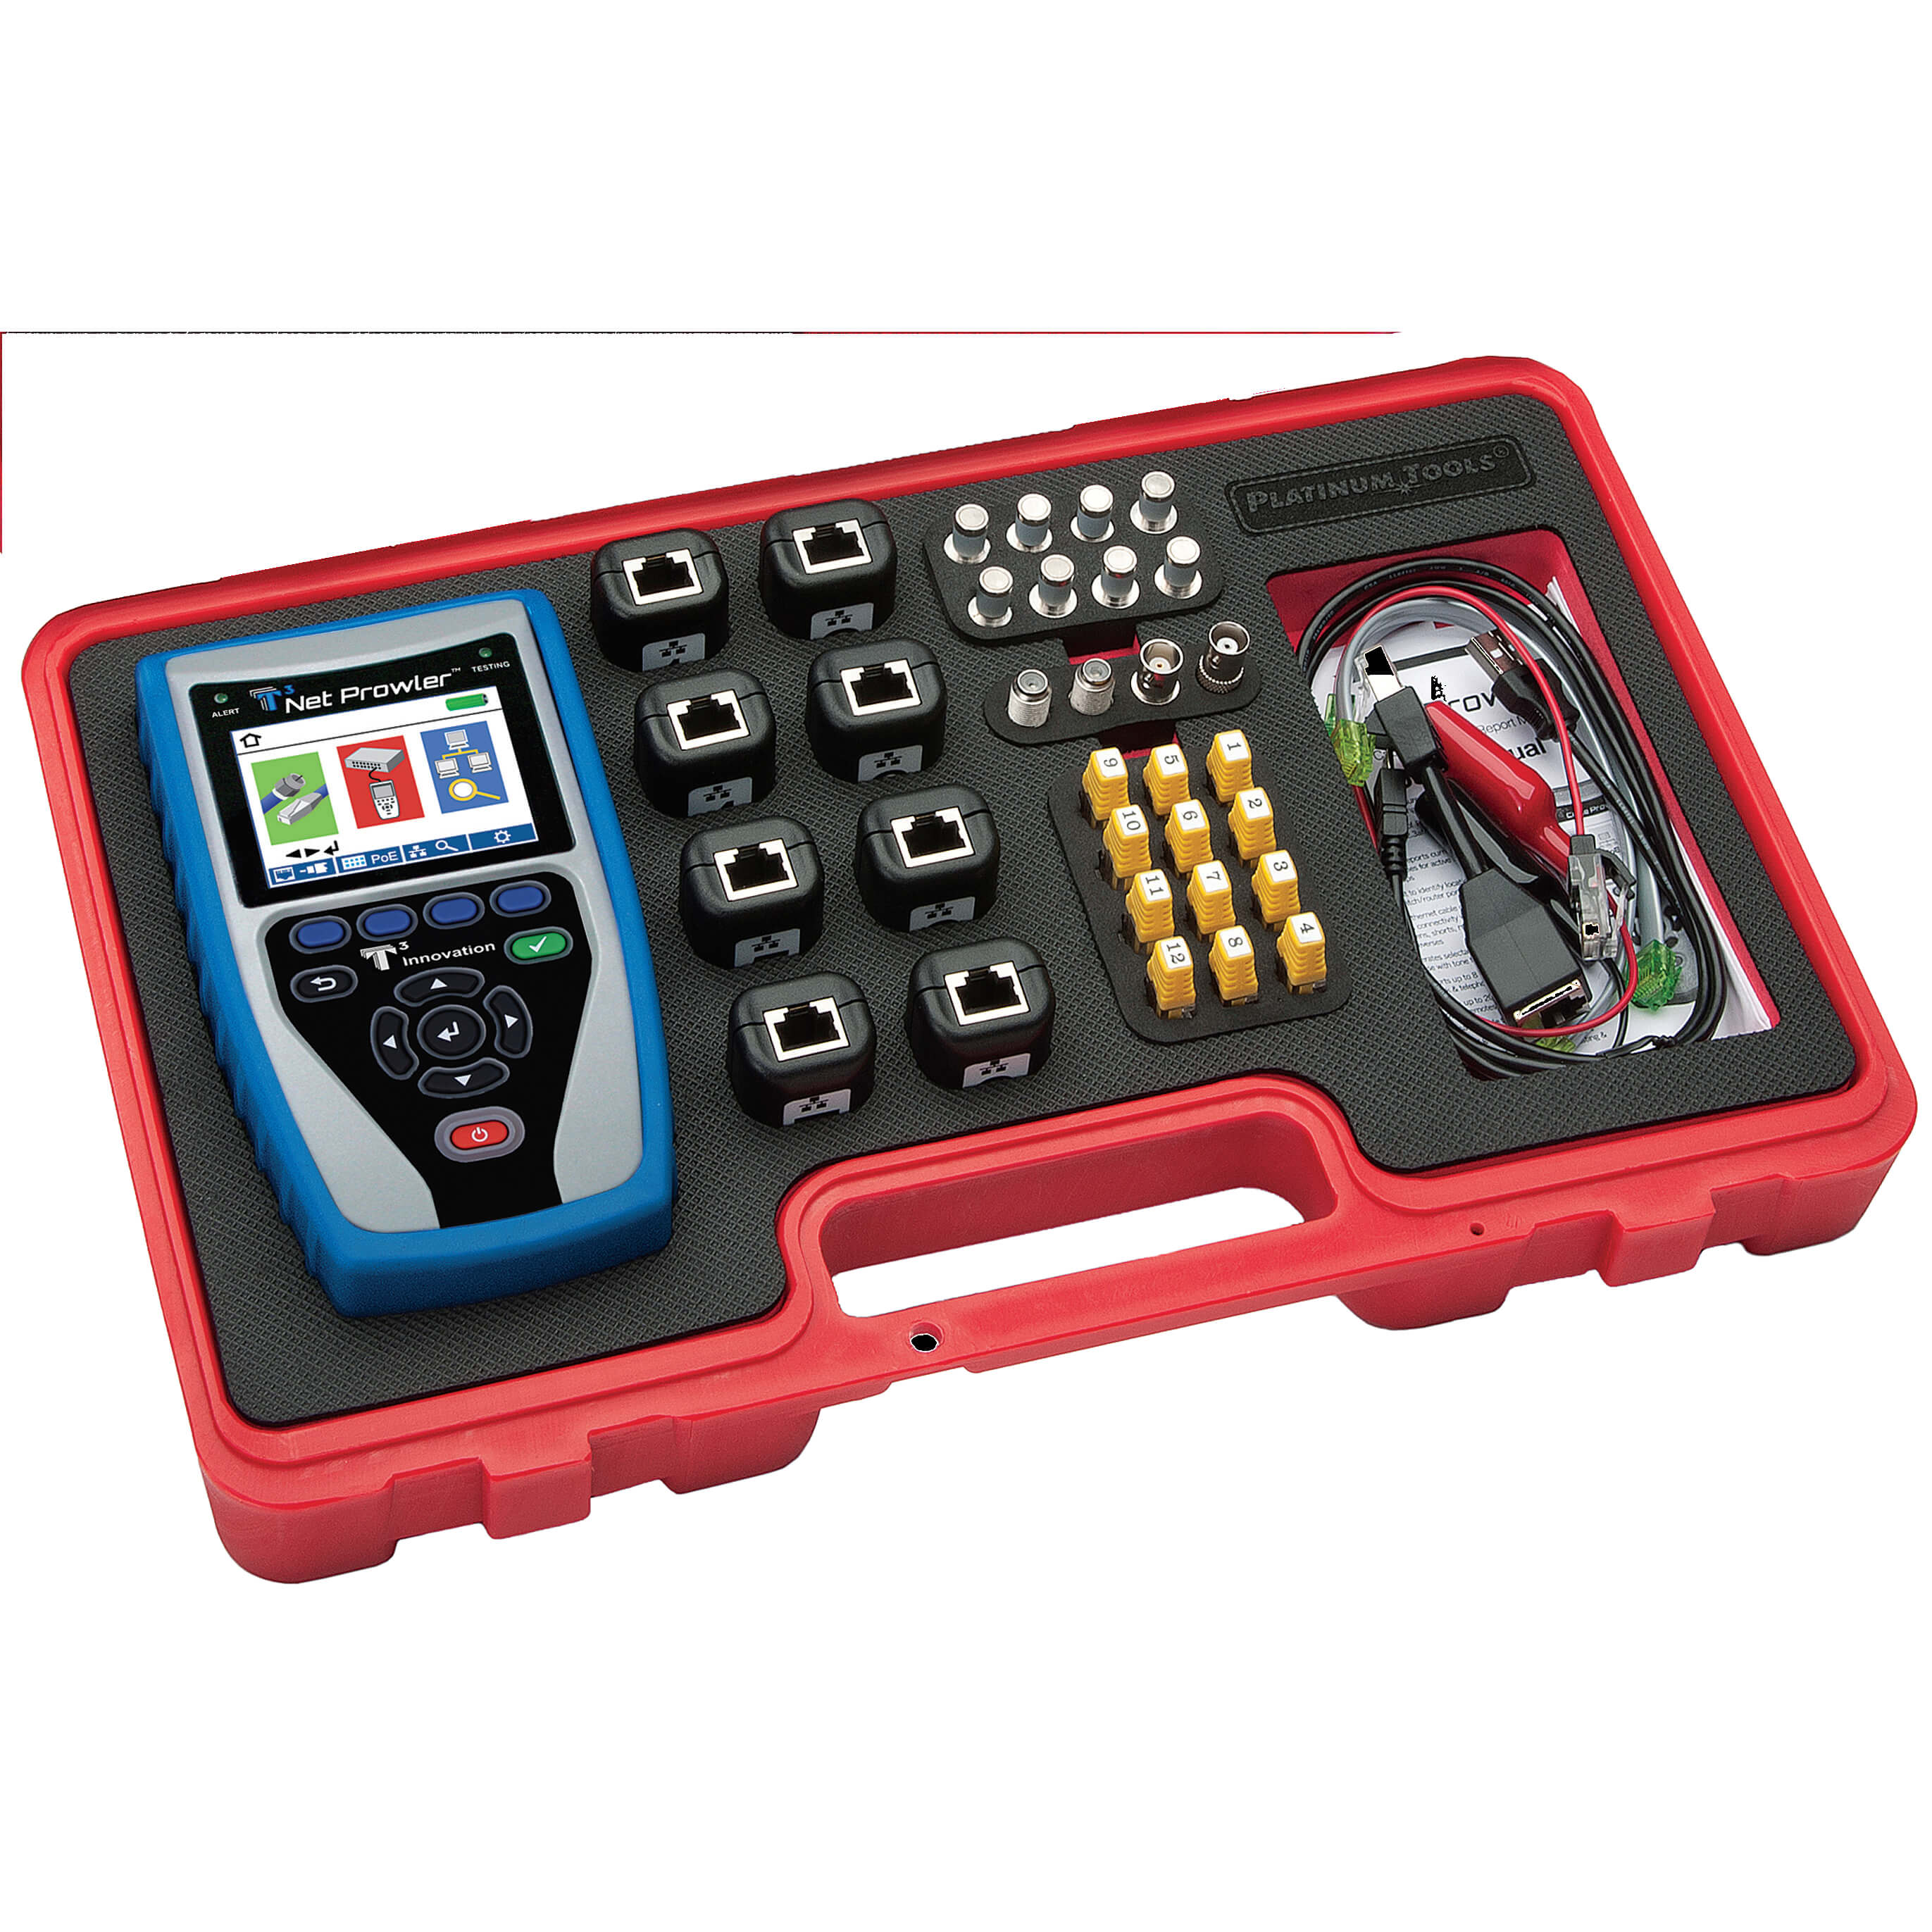 Platinum Tools TNP850K1 Net Prowler Pro Network Troubleshooting Test Kit